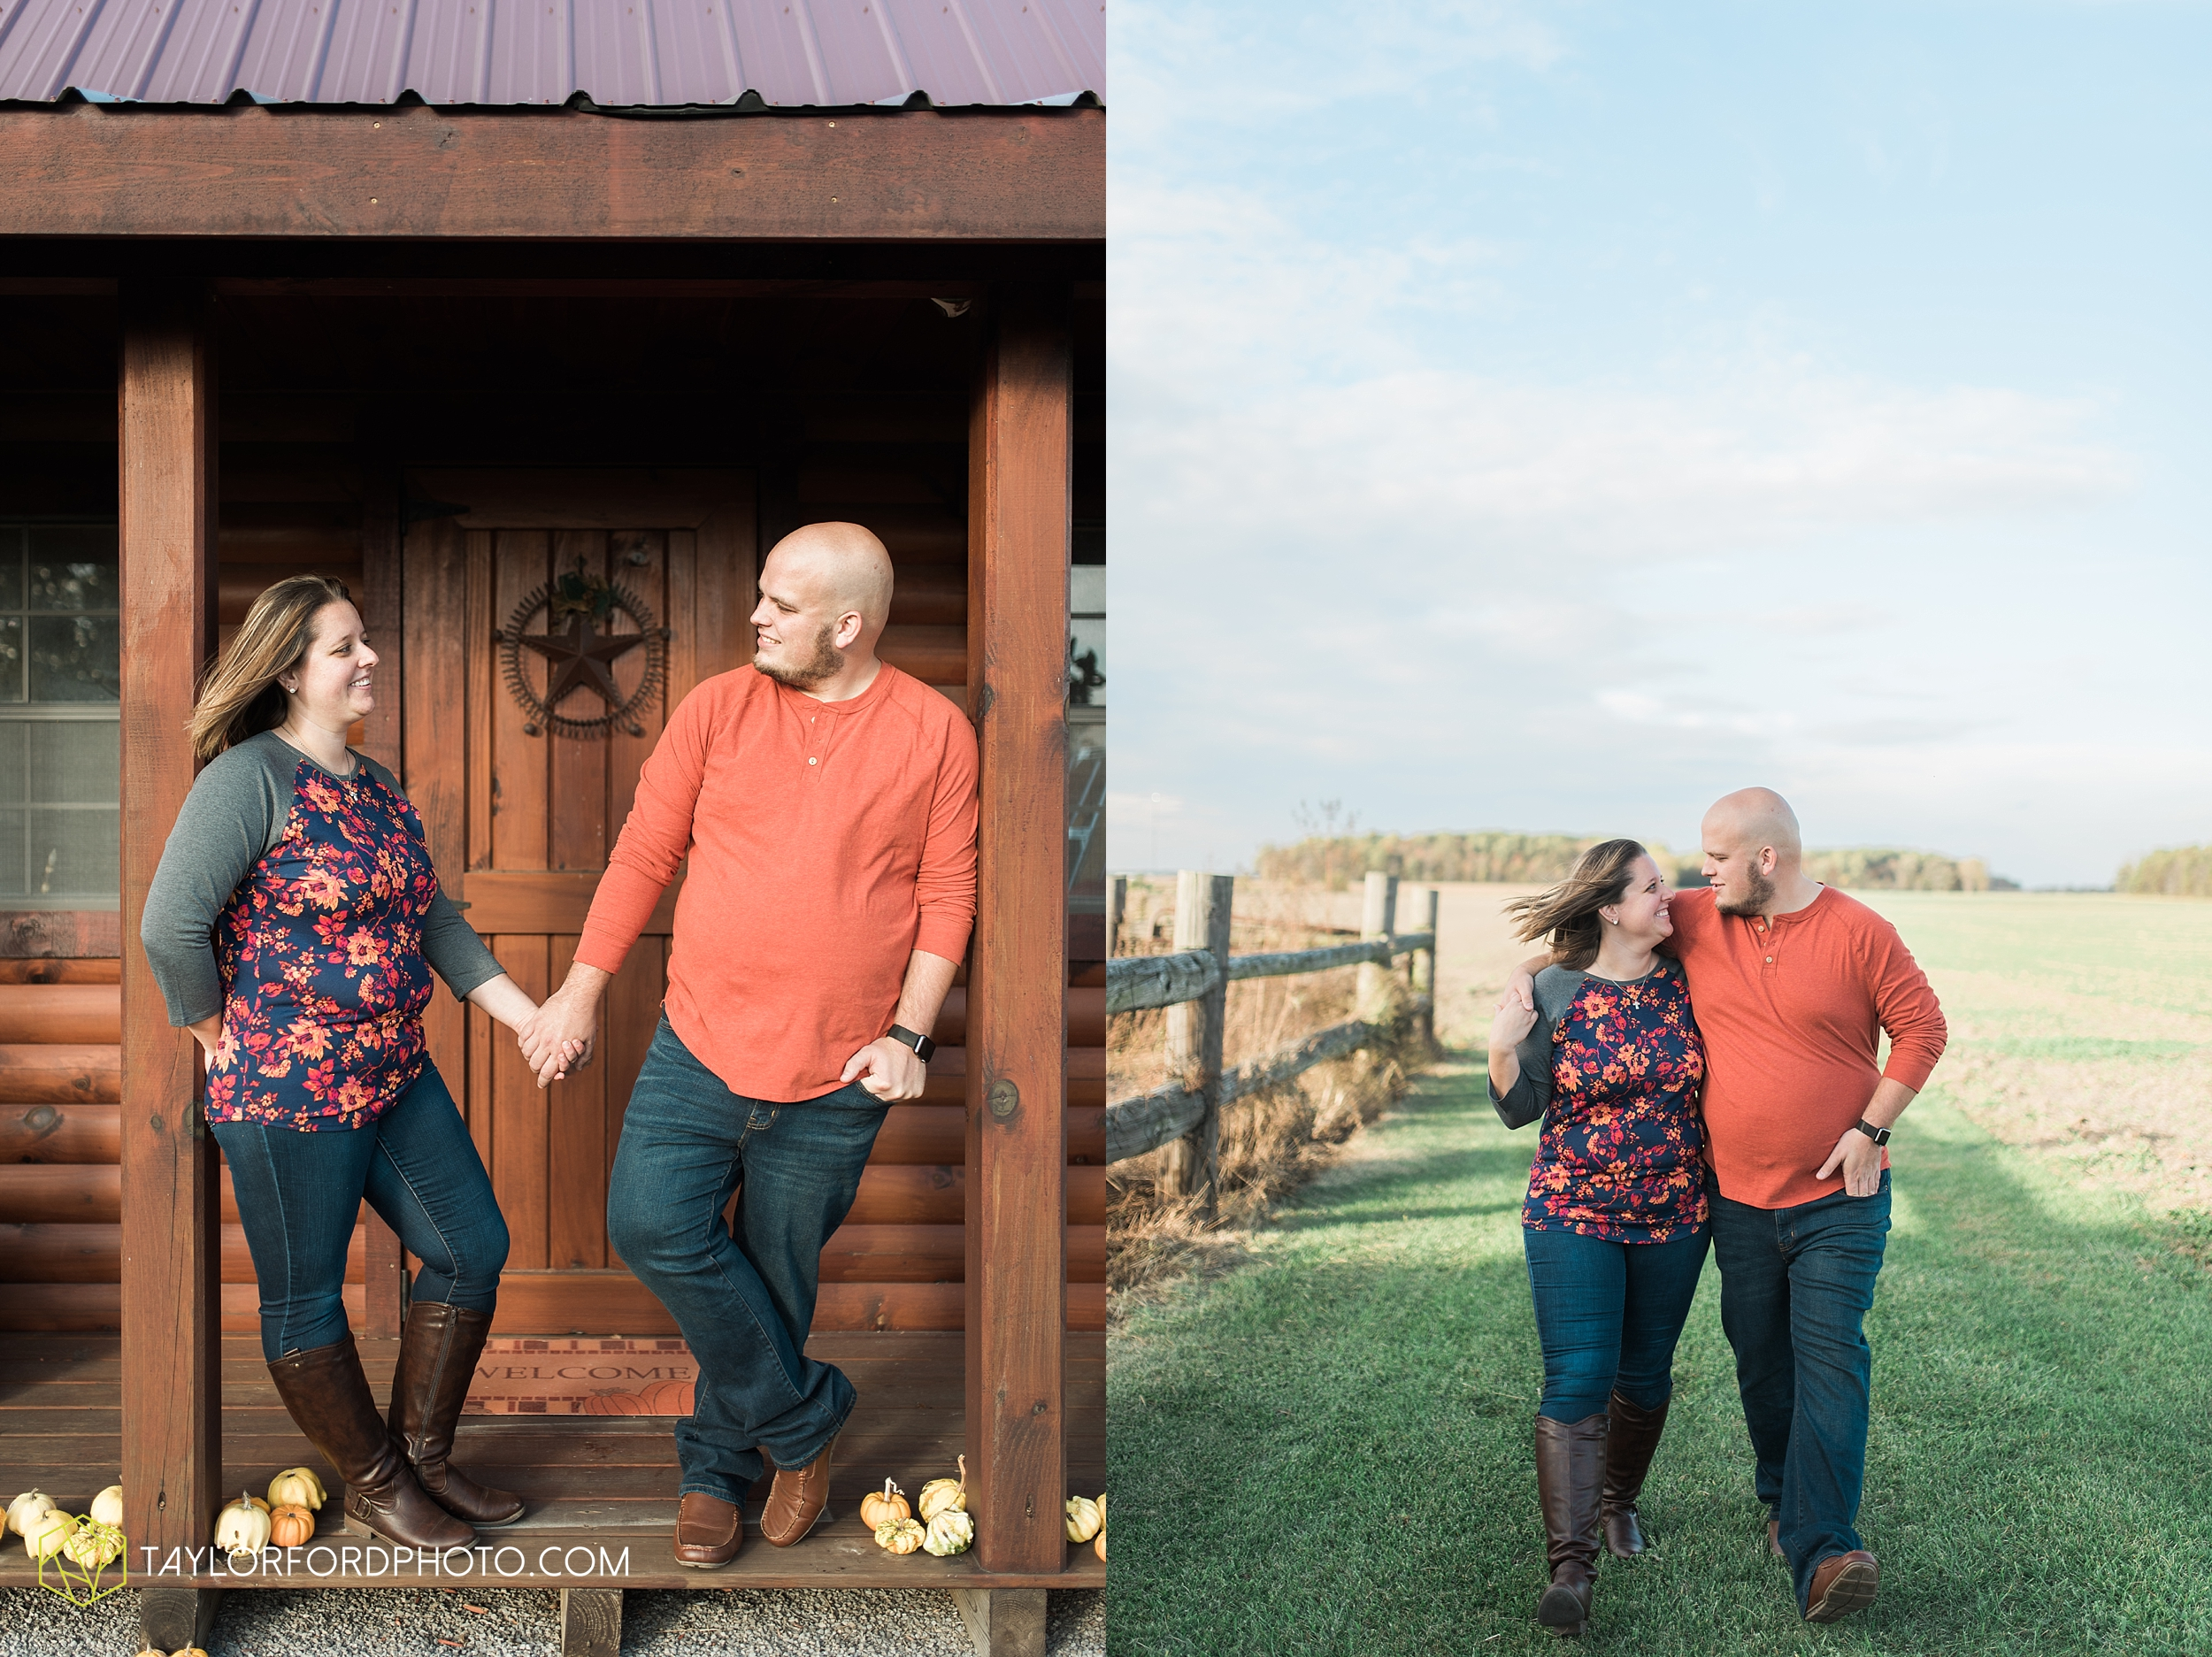 van-wert-ohio-engagement-wedding-photographer-Taylor-Ford-Photography-fall-farm-nature_4145.jpg